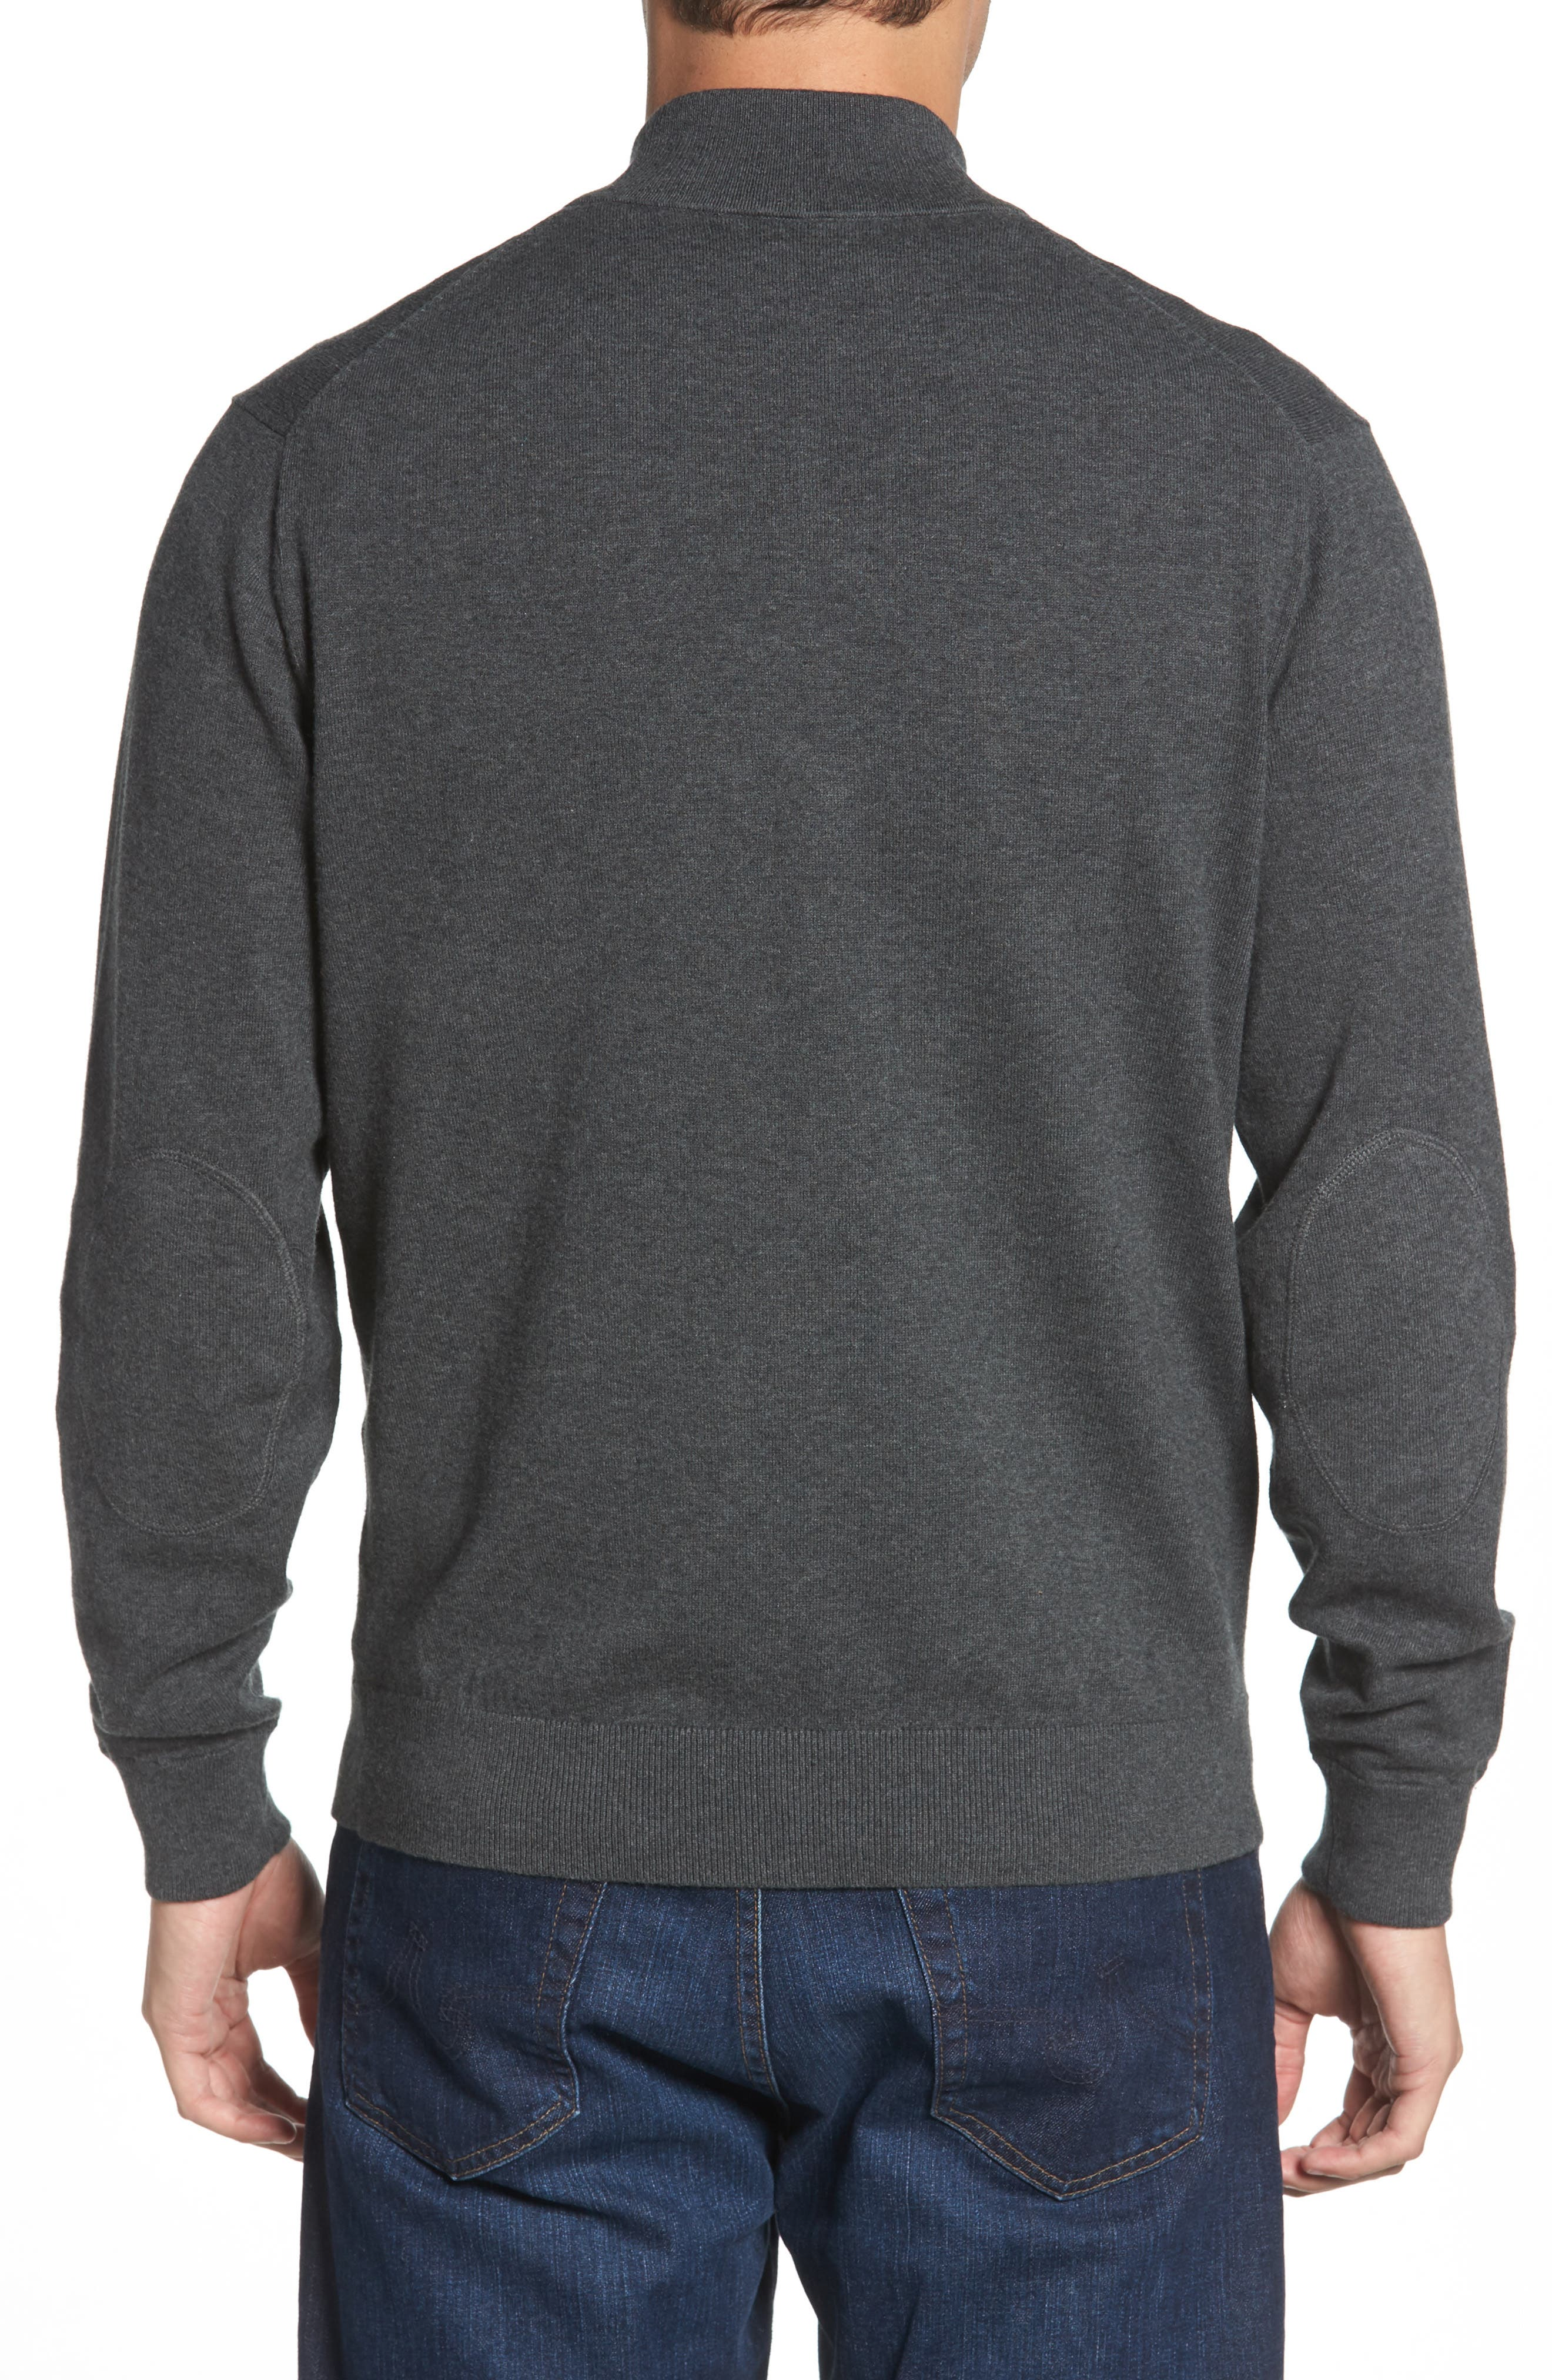 CUTTER & BUCK,                             Indianapolis Colts - Lakemont Regular Fit Quarter Zip Sweater,                             Alternate thumbnail 2, color,                             CHARCOAL HEATHER